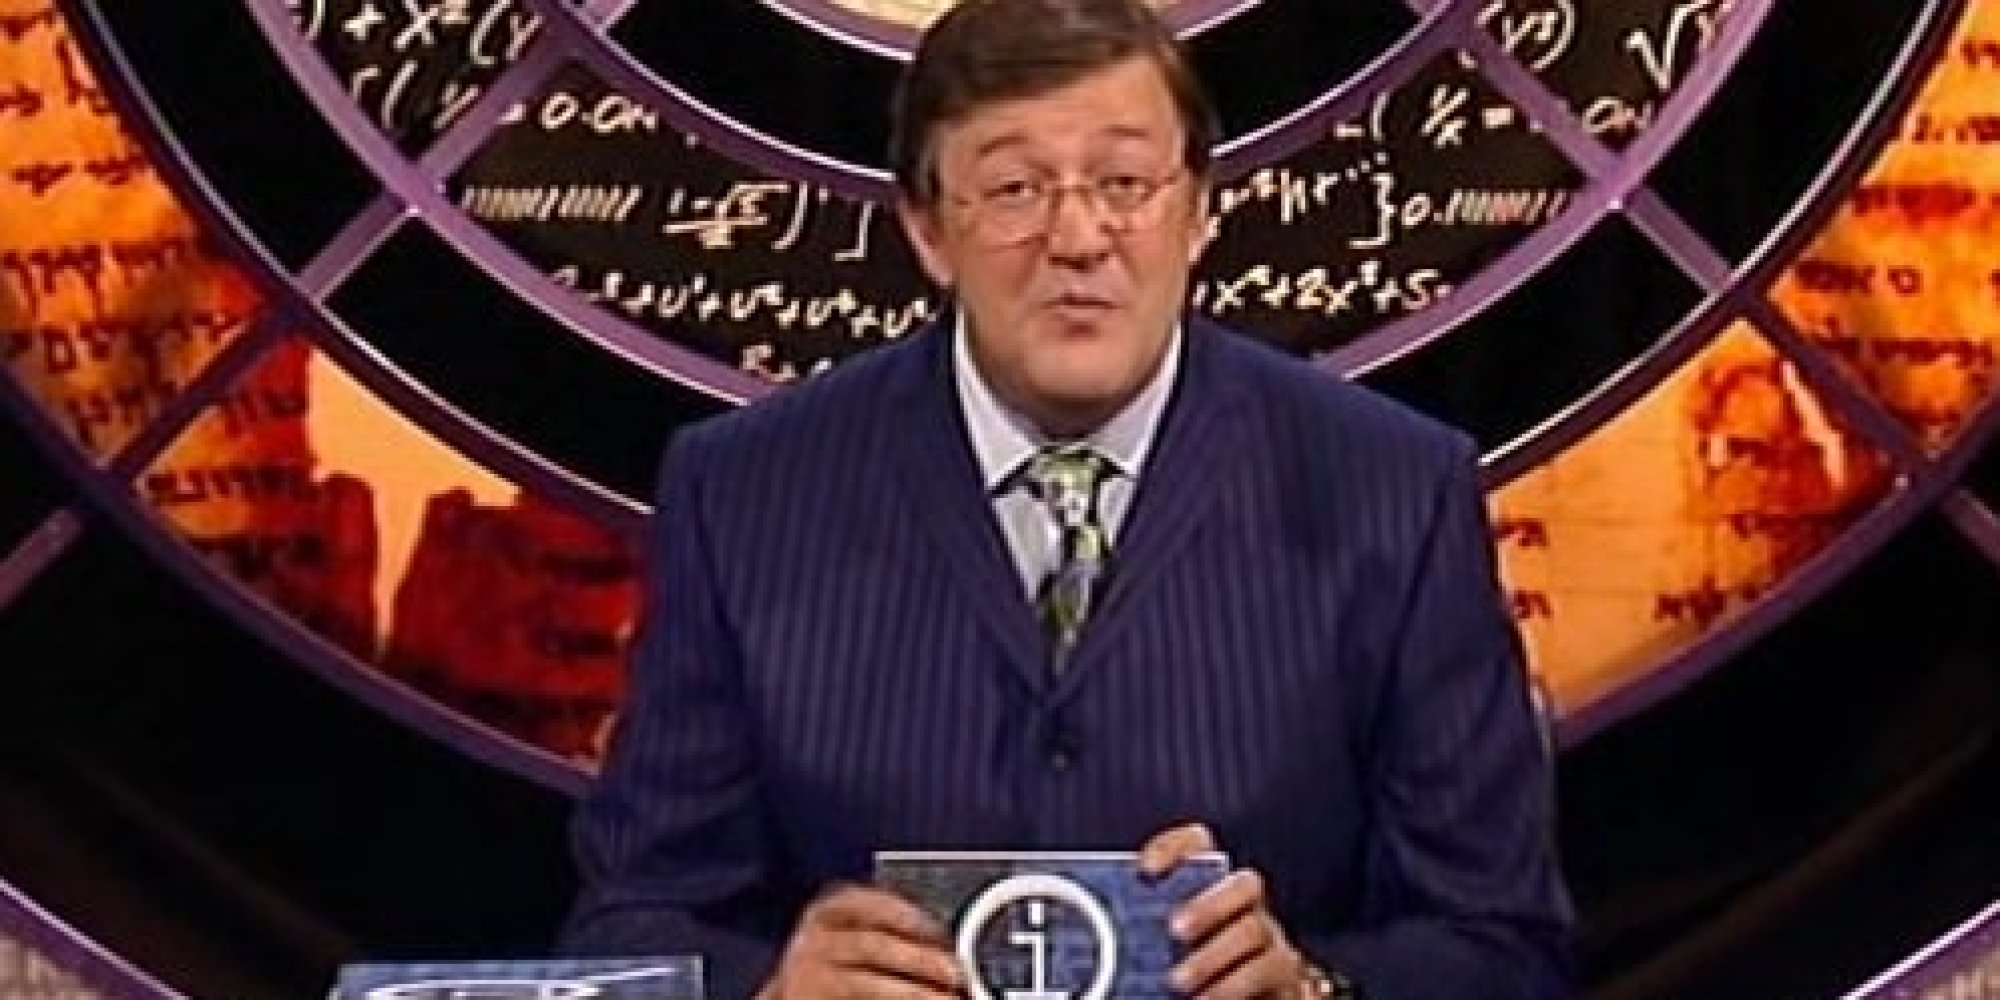 As Stephen Fry Takes His QI Departure We Salute His 13